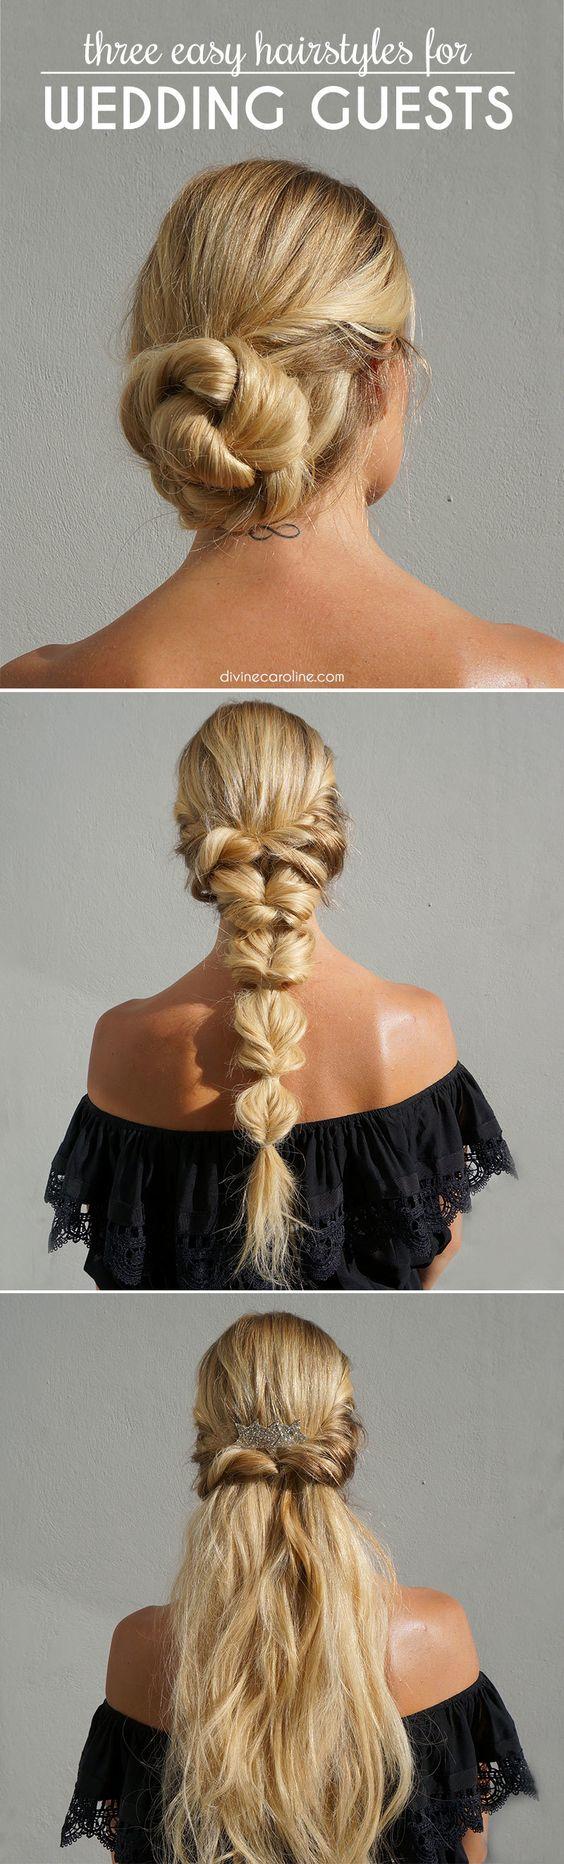 Here are three easy and fabulous hairstyles for wedding guests to